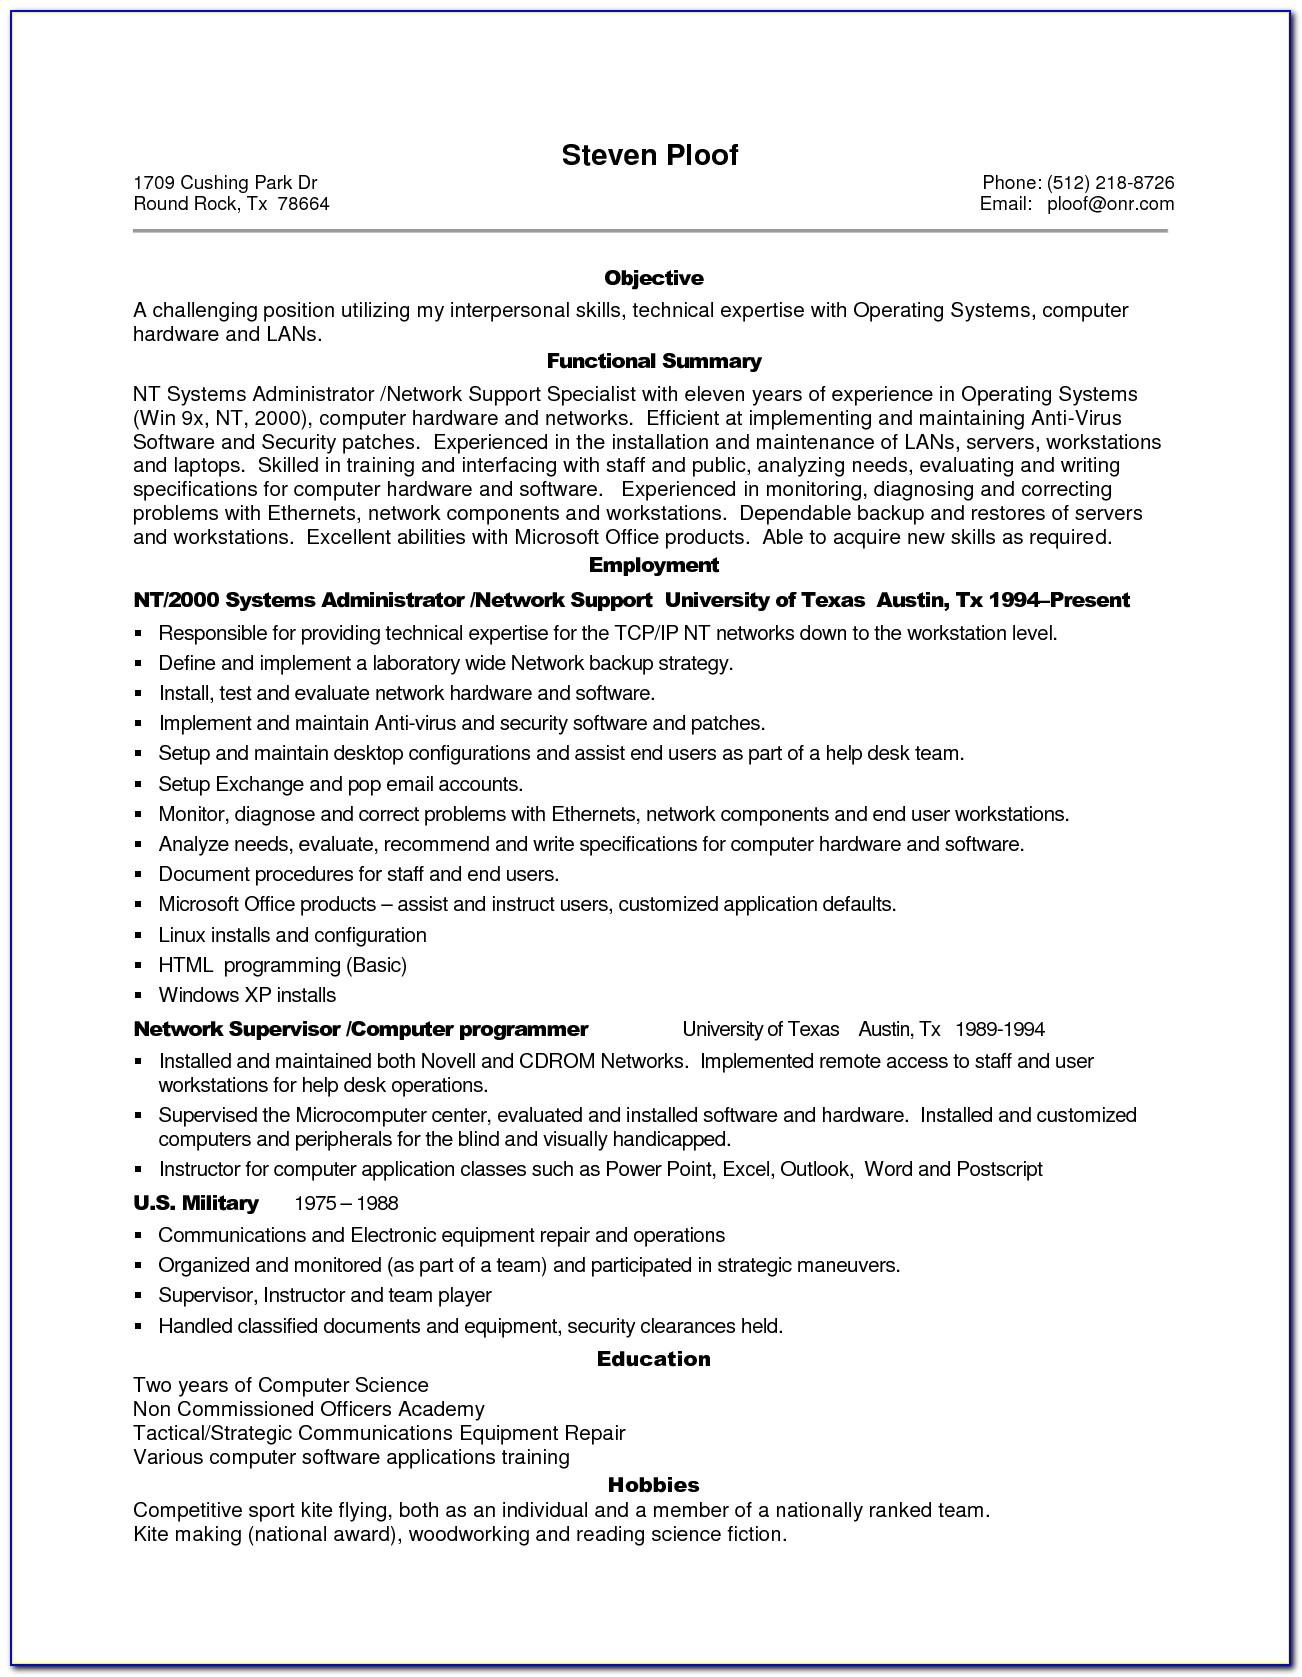 Resume Template For Managers Executives